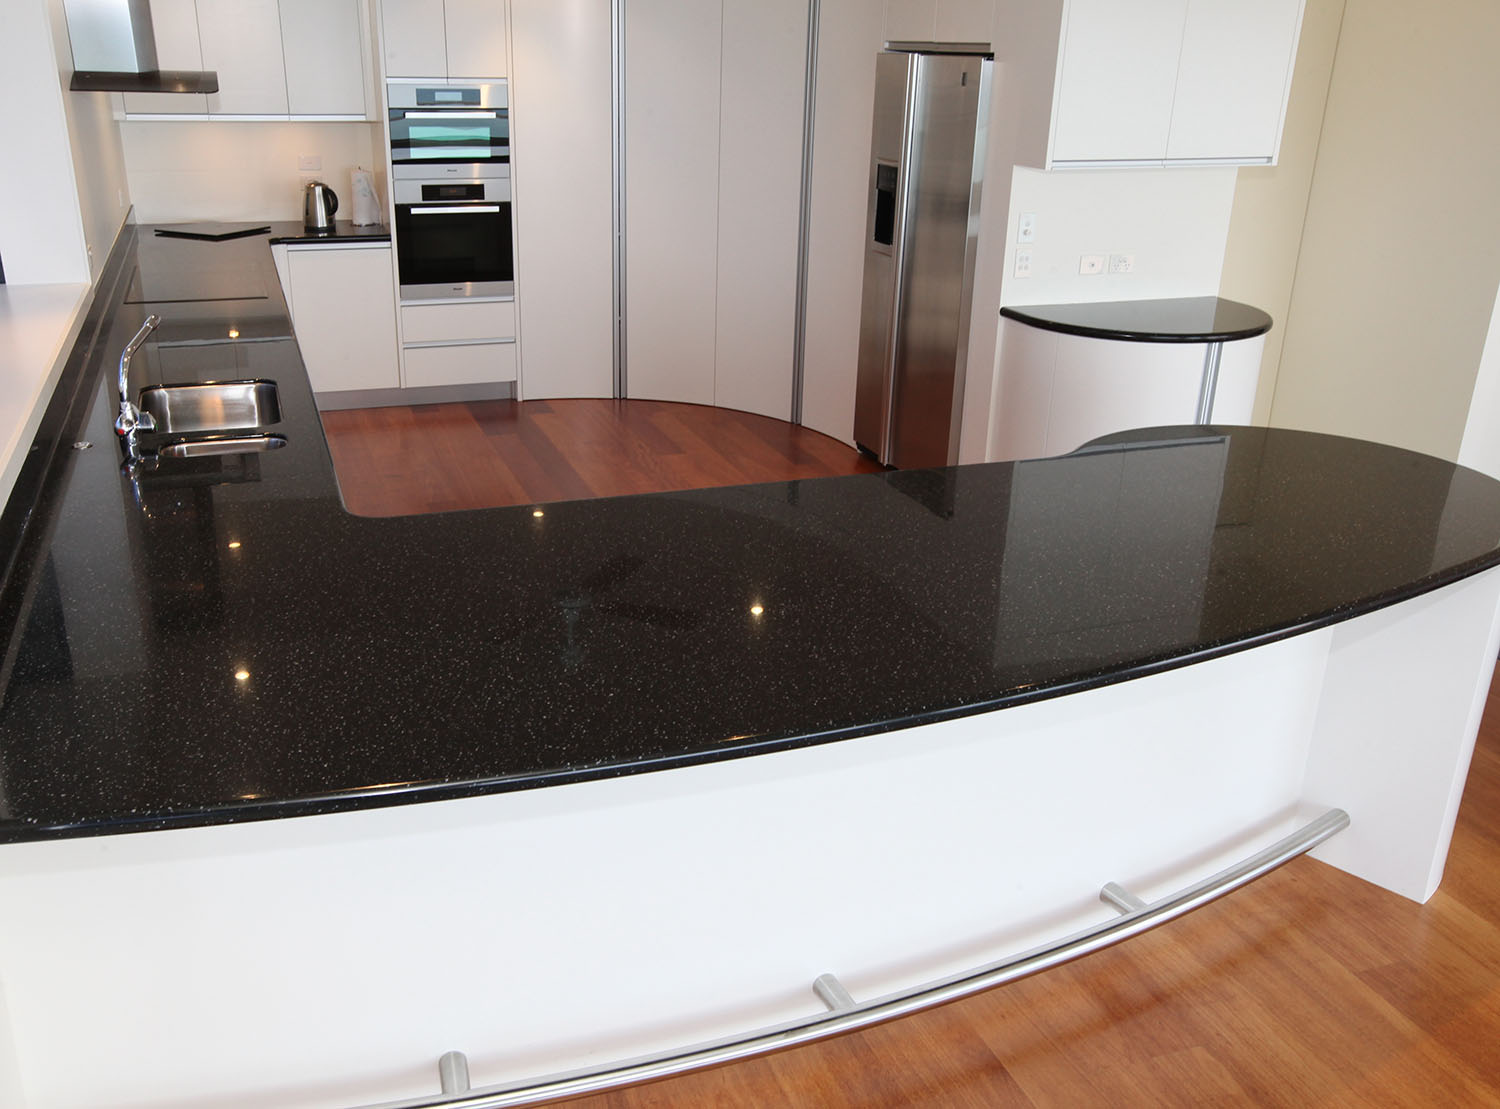 Lacquered kitchen showing curved doors and panels